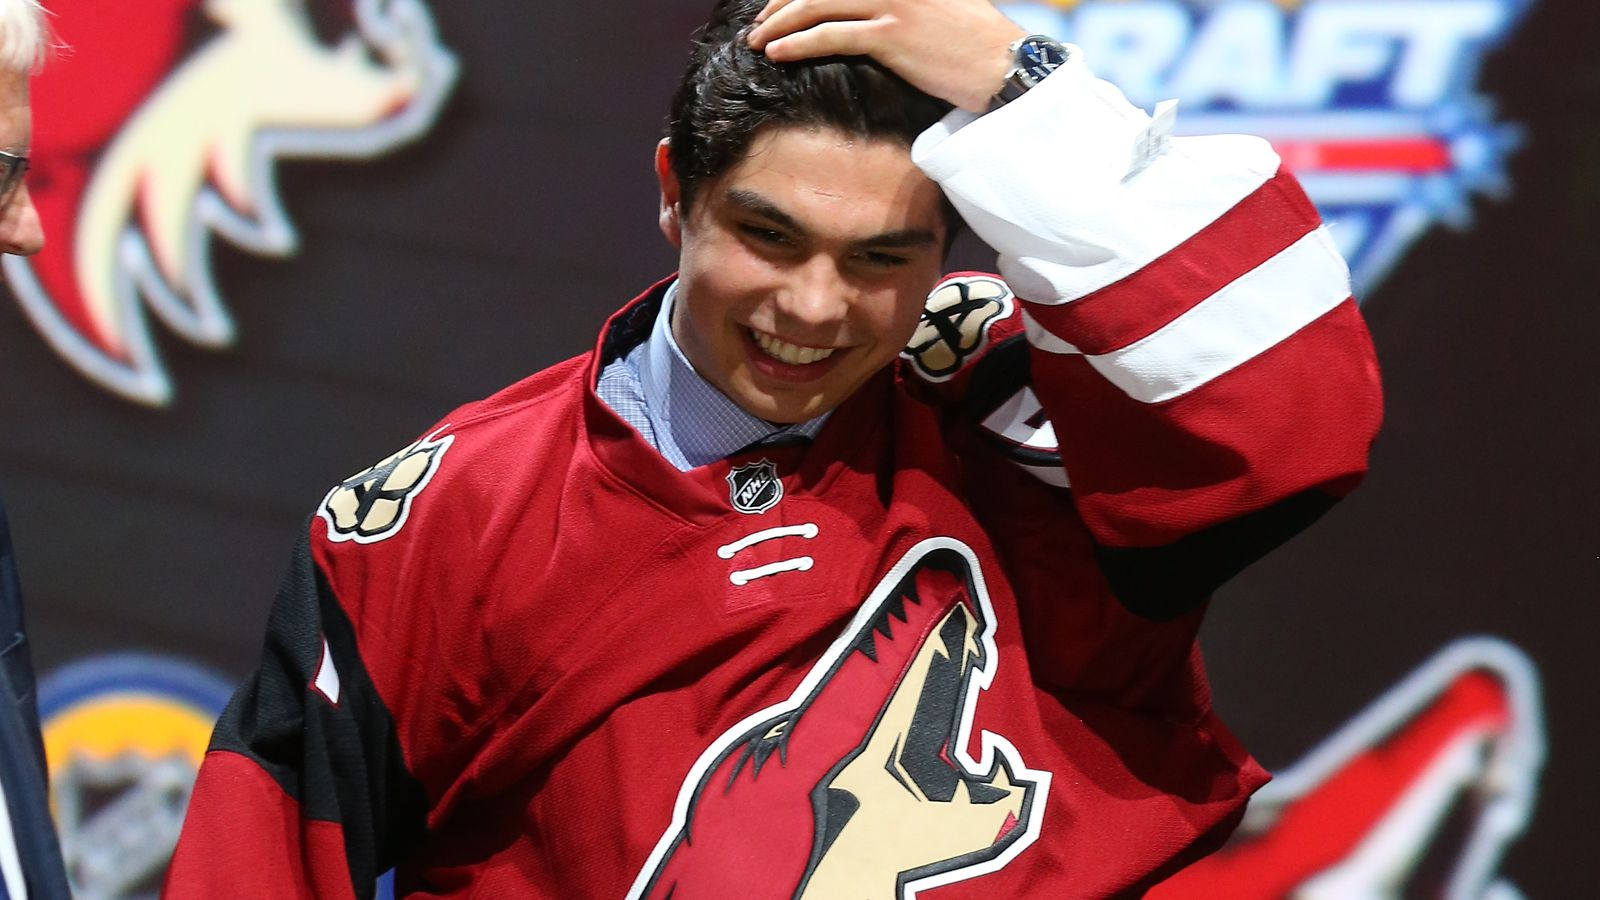 Will the Arizona Coyotes wear a third jersey in 2015-16? - Five for Howling